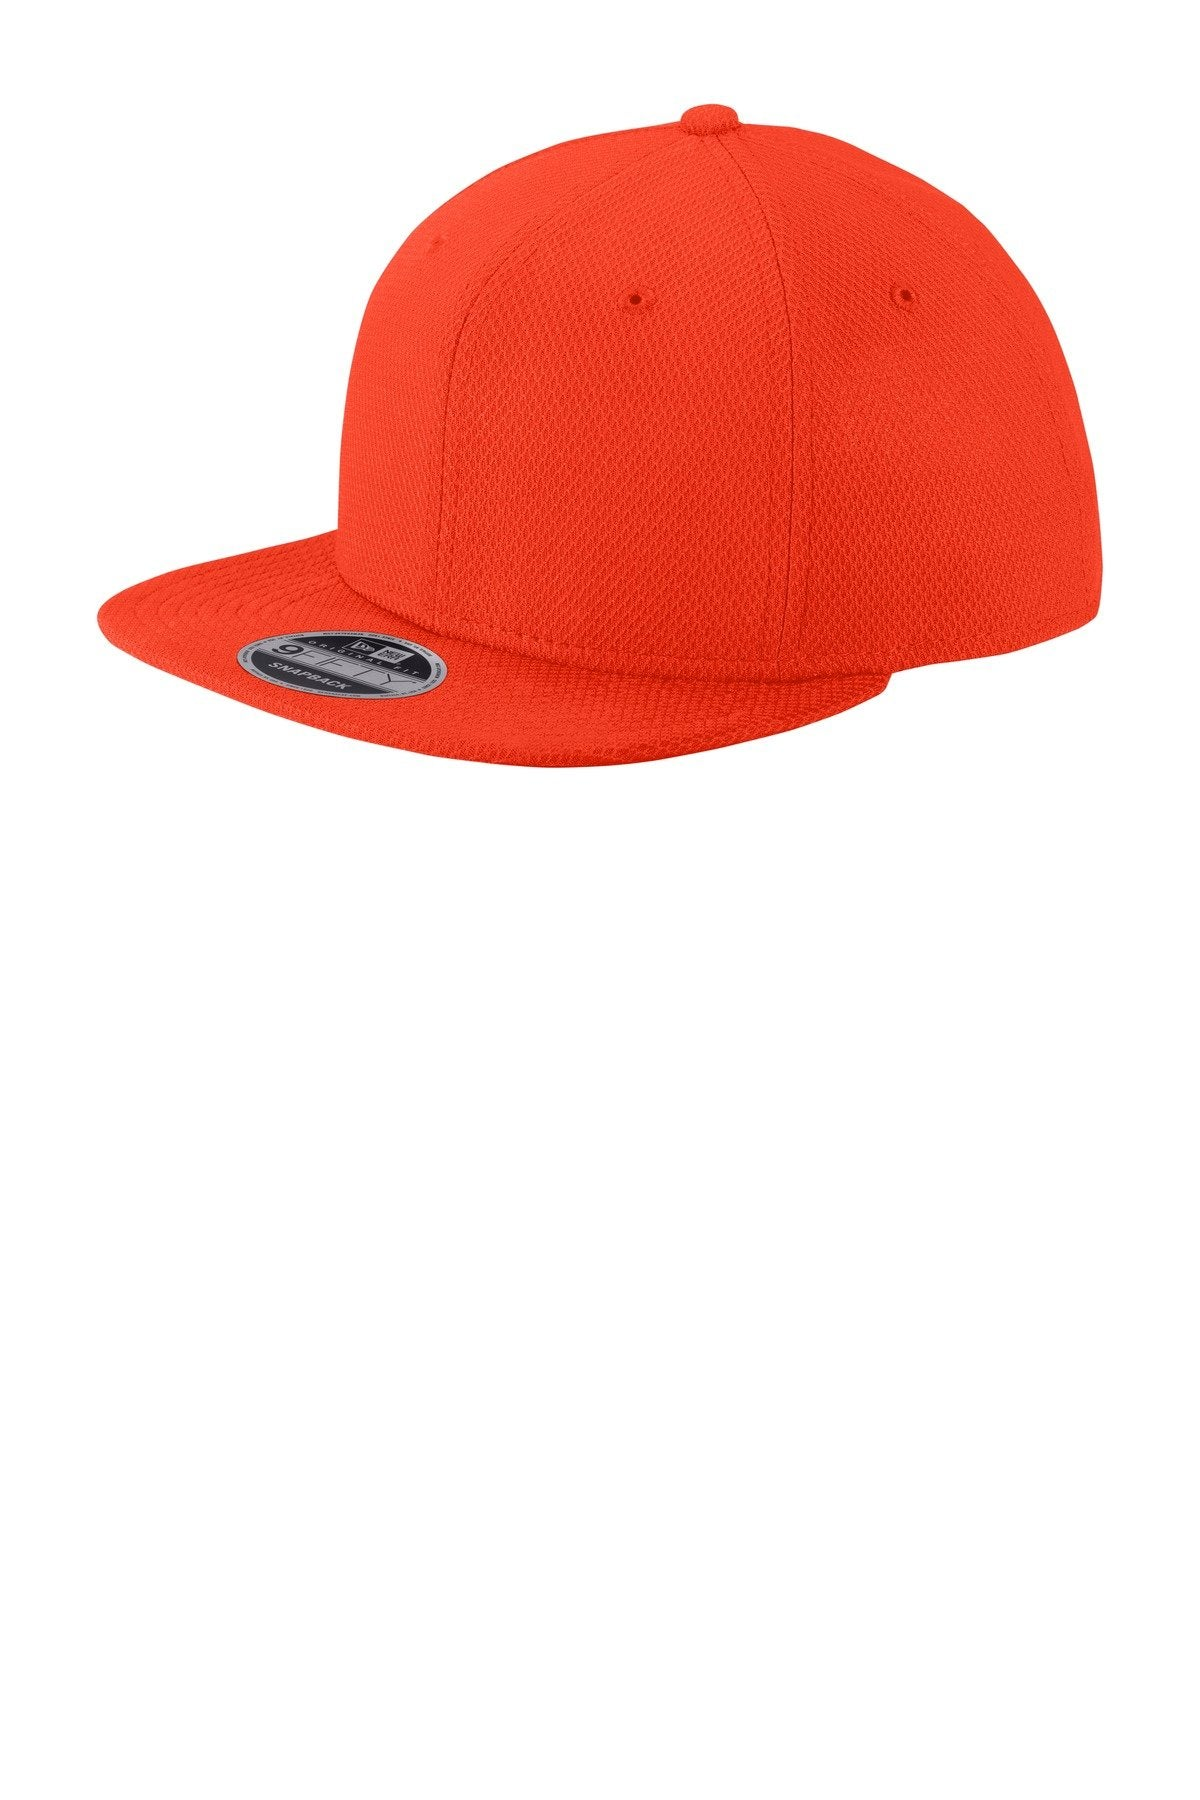 Deep Orange - New Era NE404